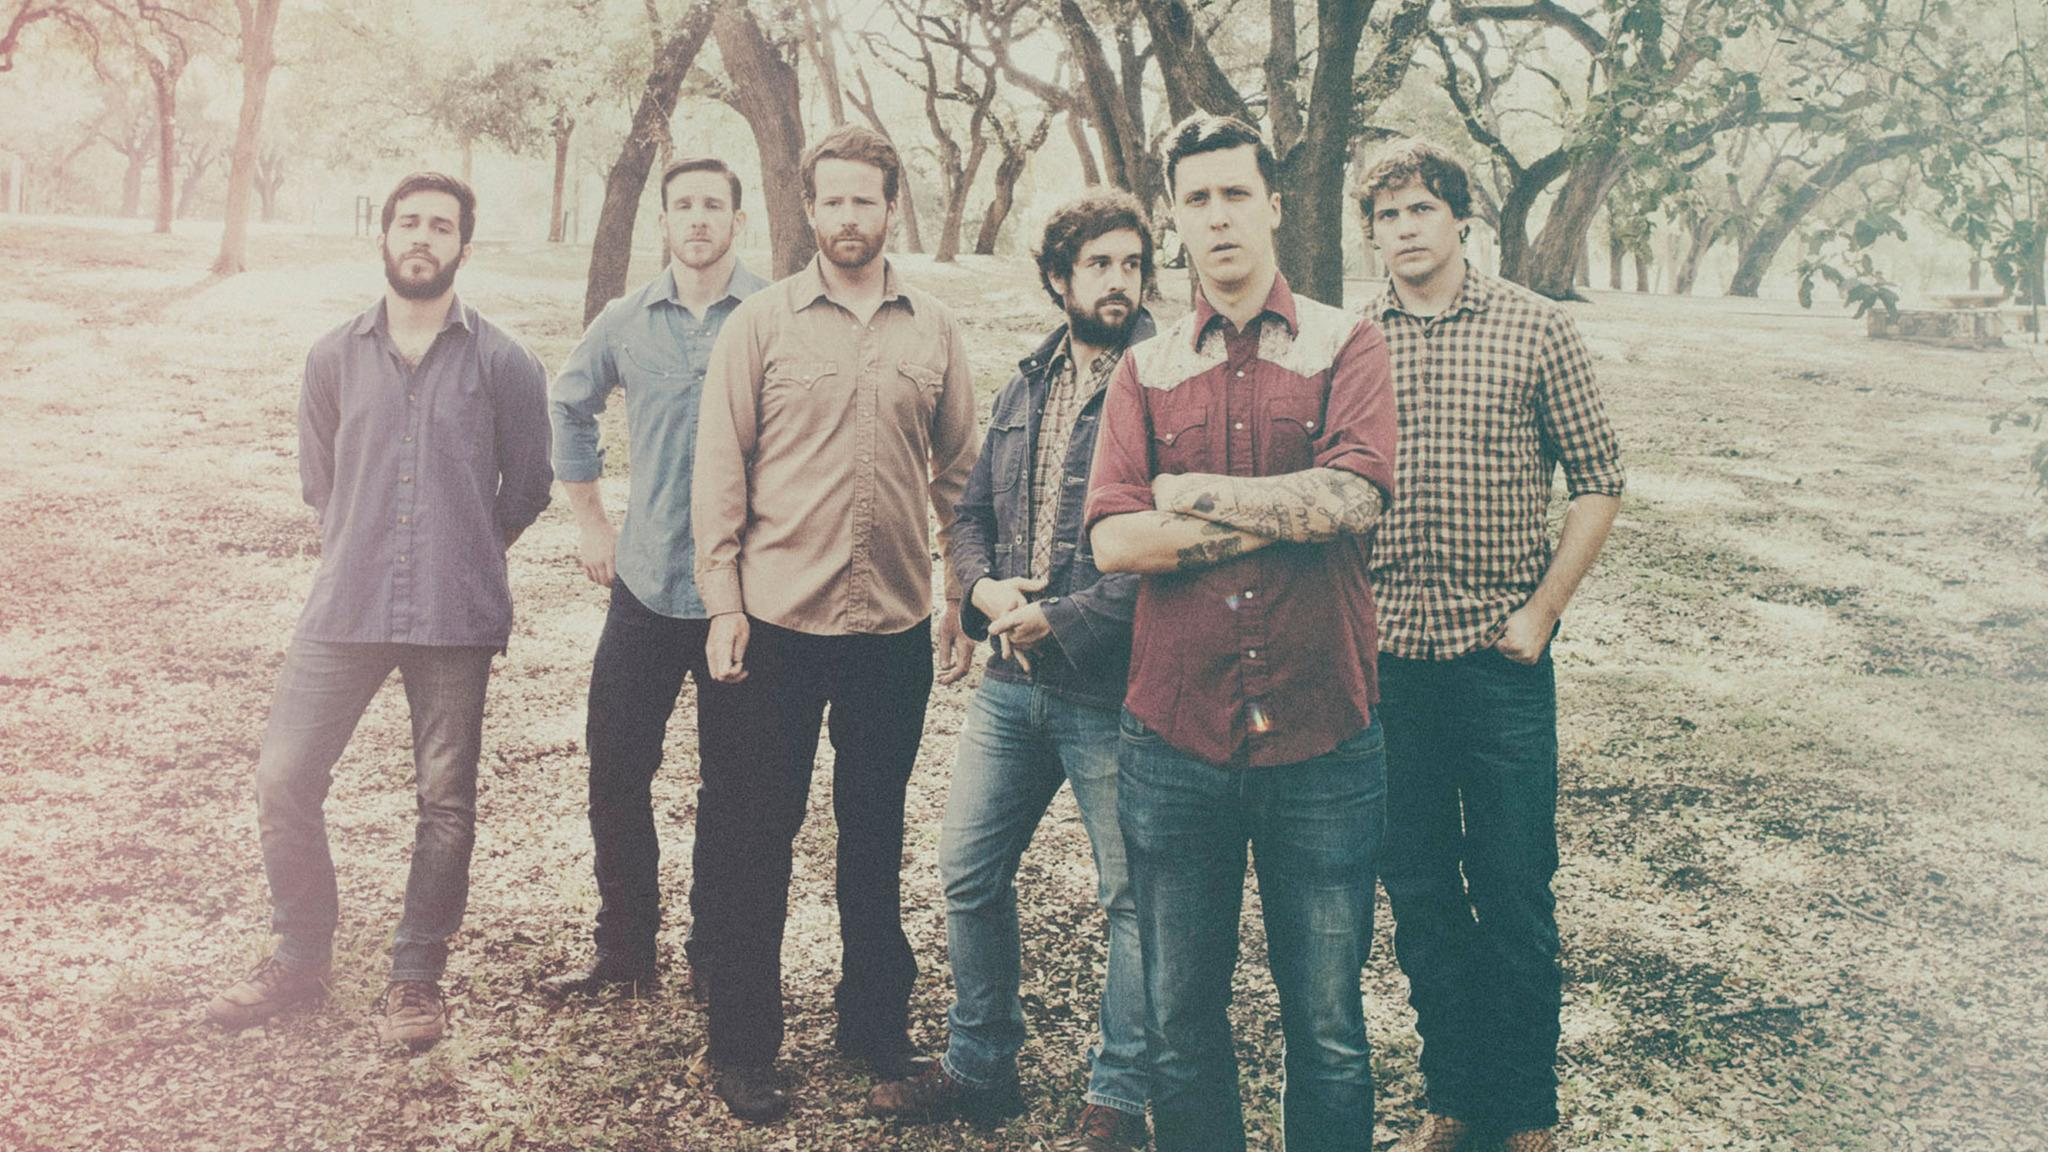 American Aquarium at Gruene Hall